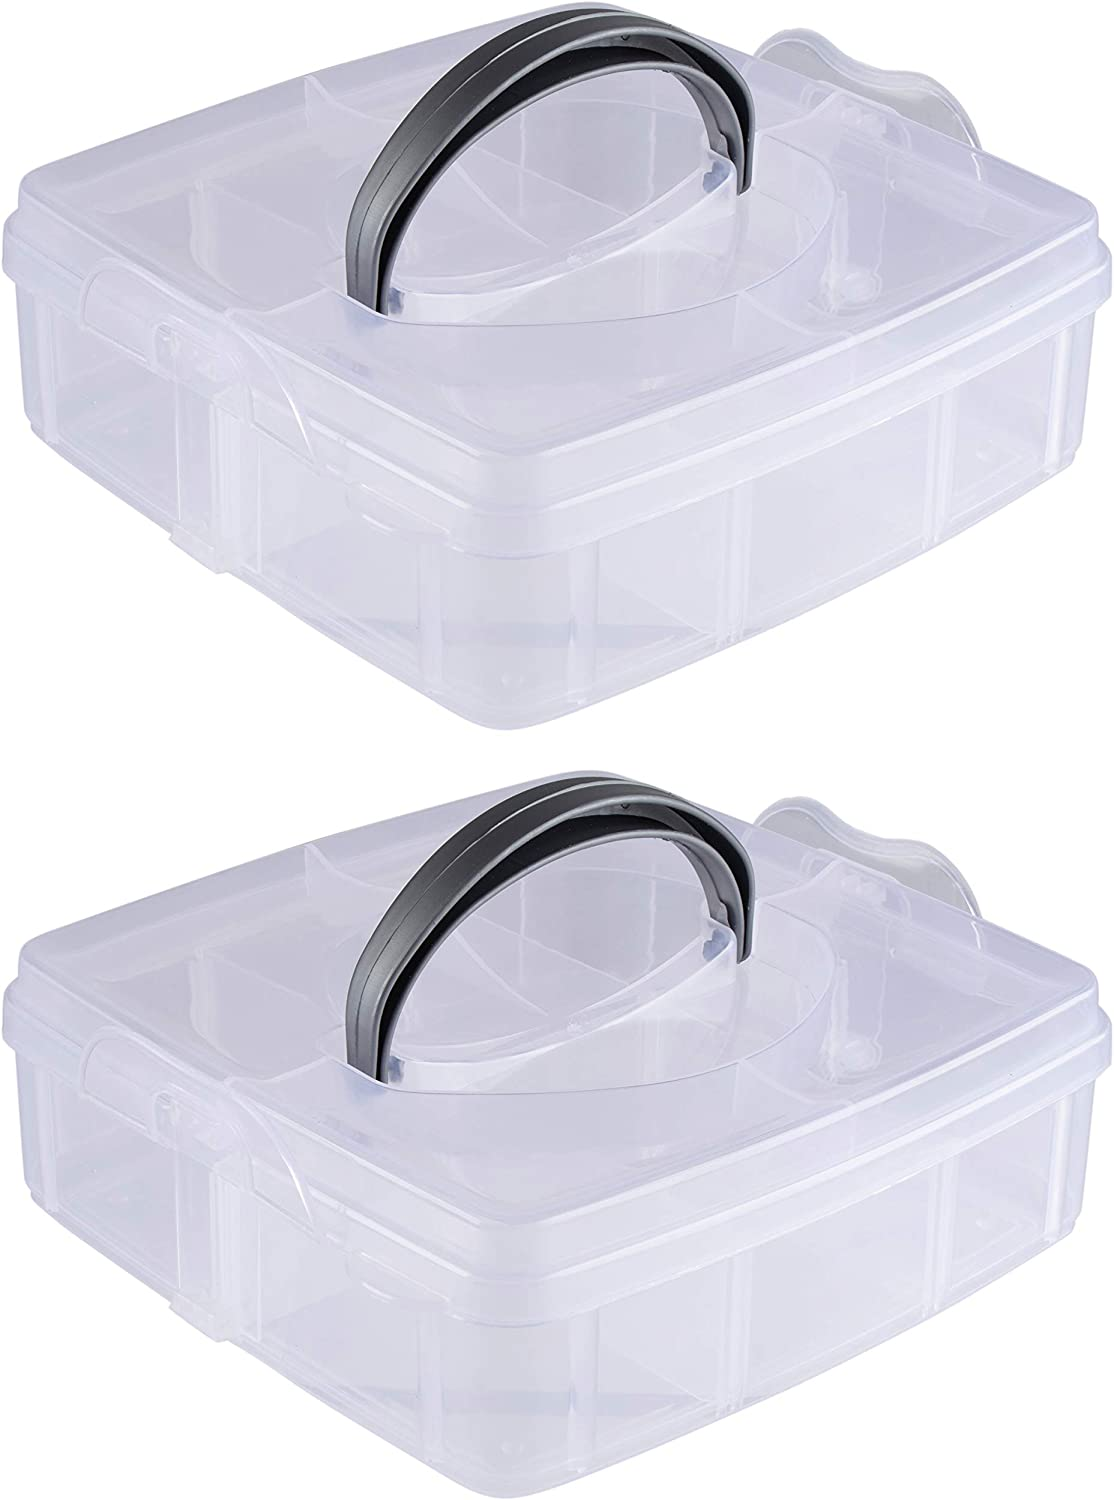 Plastic Craft Organizer Box with 6 Compartments (6 Inches, 2-Pack)